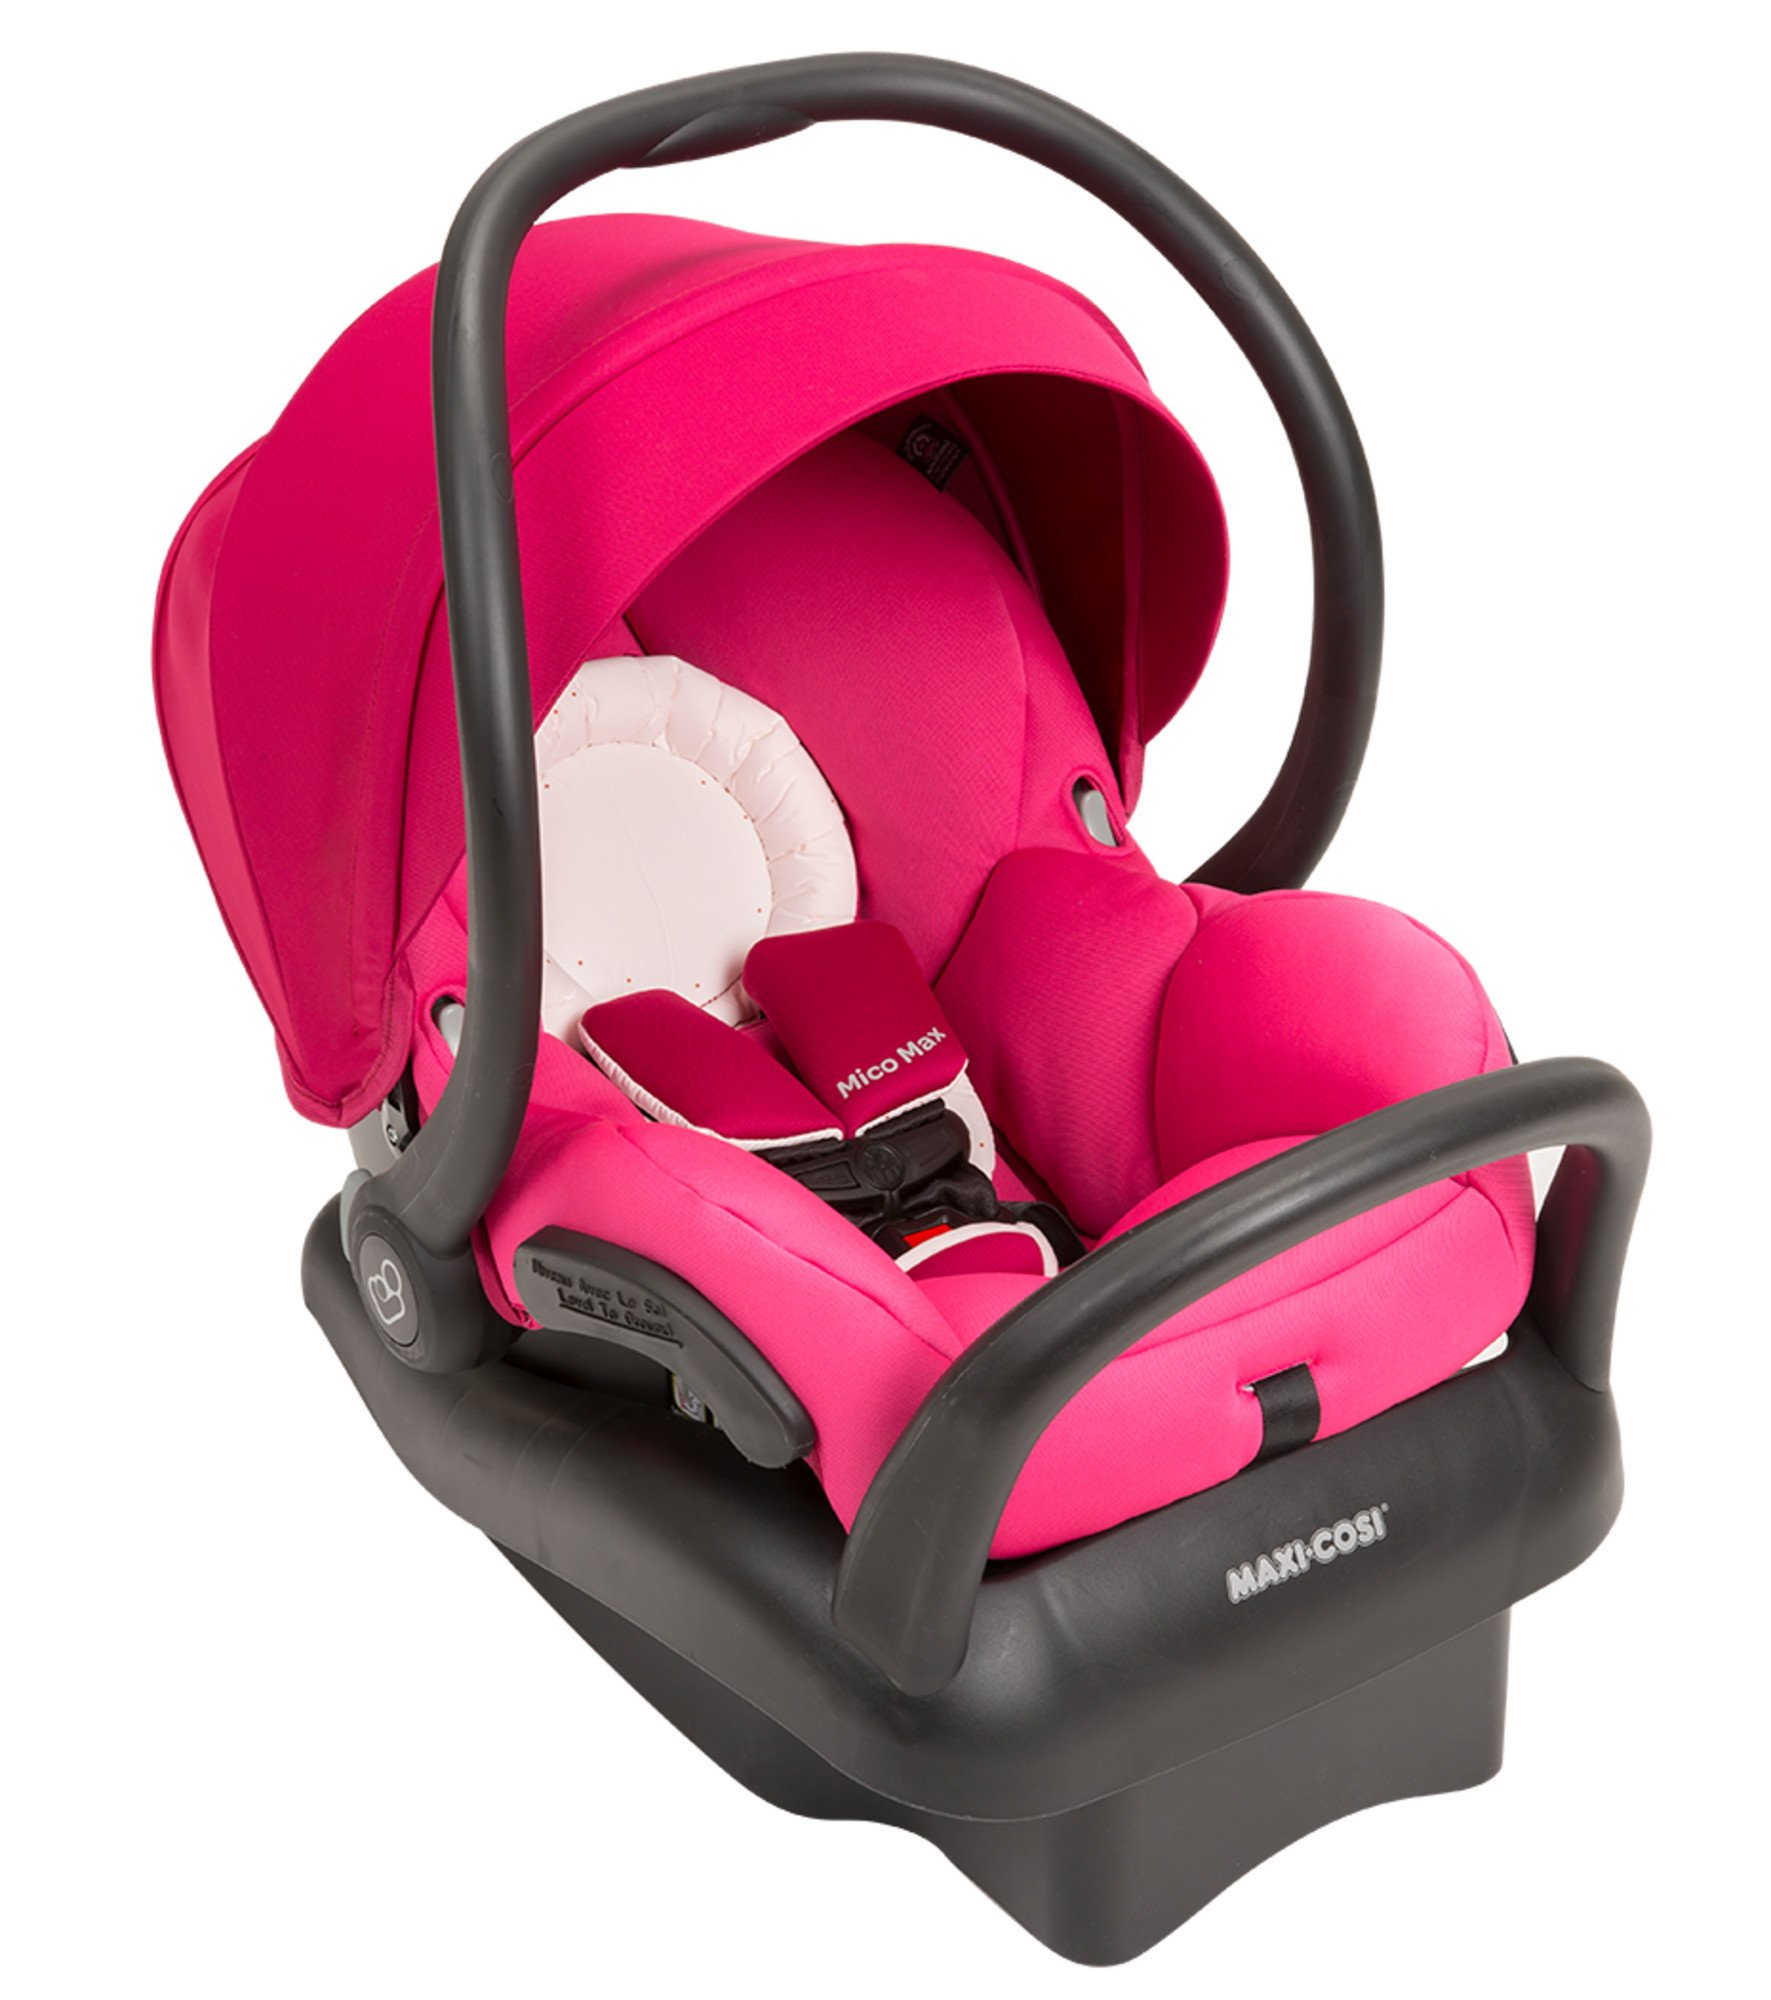 Maxi-Cosi Mico Max 30 Infant Car Seat, Pink Berry